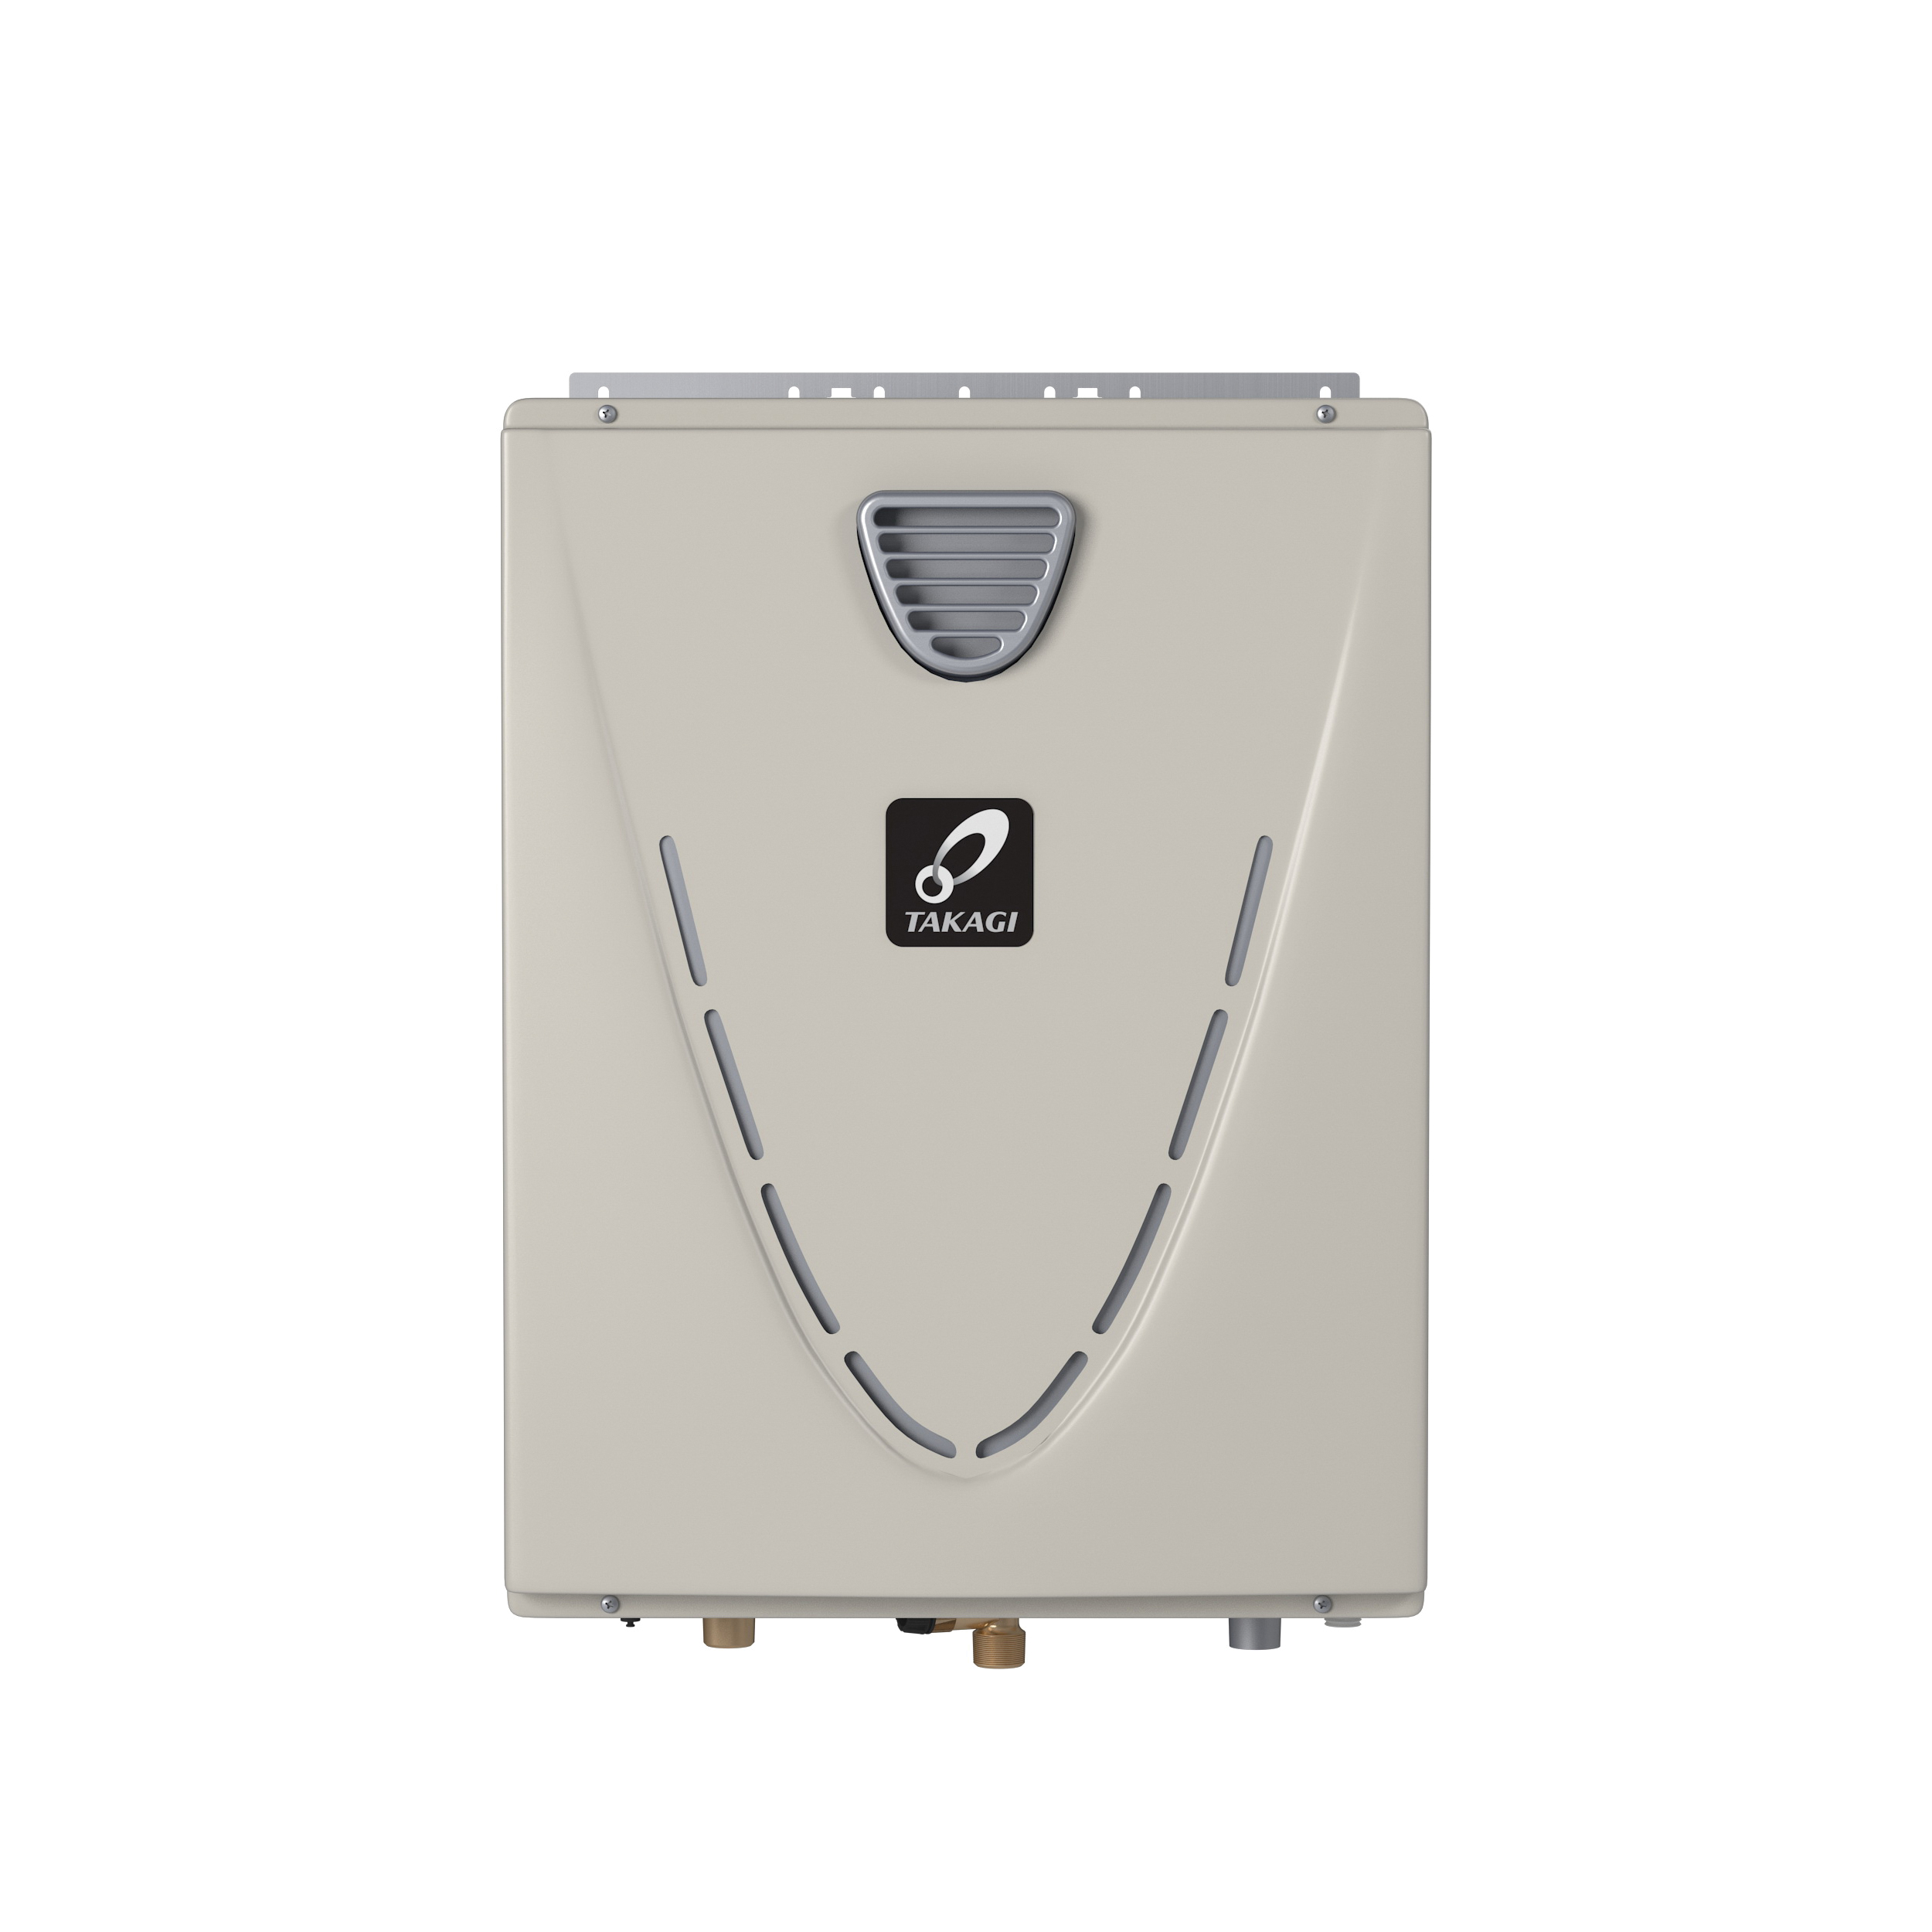 Takagi 100123390 H3 Tankless Water Heater, Natural Gas, 199000 Btu/hr Heating, Outdoor, Condensing, 10 gpm, 4 in, 0.95 Energy Factor, Commercial/Residential/Dual: Dual, Ultra Low NOx: Yes